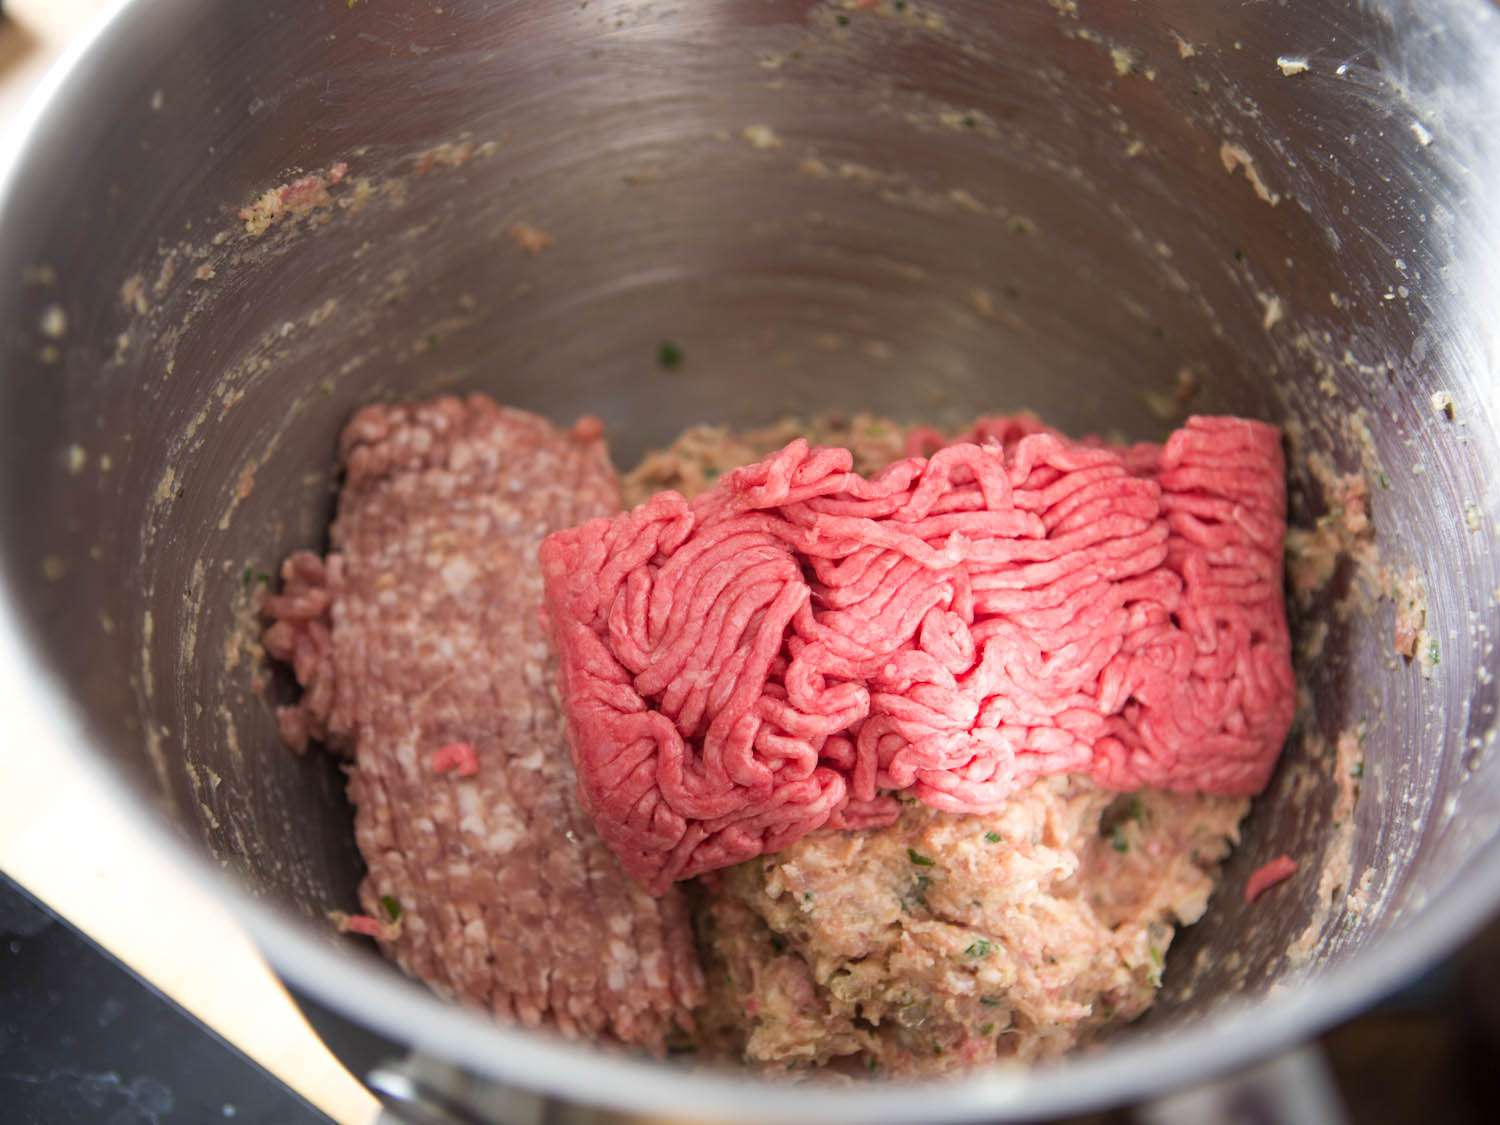 Adding remaining ground meat to emulsified meat and flavorings mixture for meatballs.